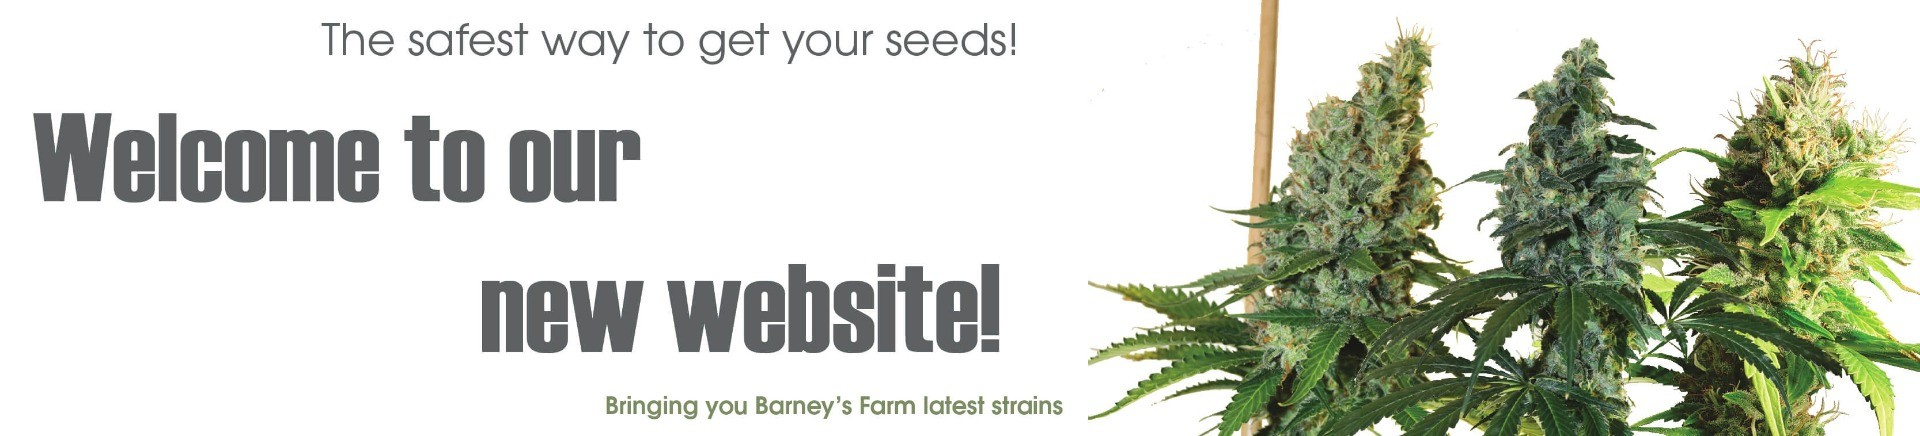 Bringing you Barneys Farm latest strains, your favorite Barneys Farm distributor